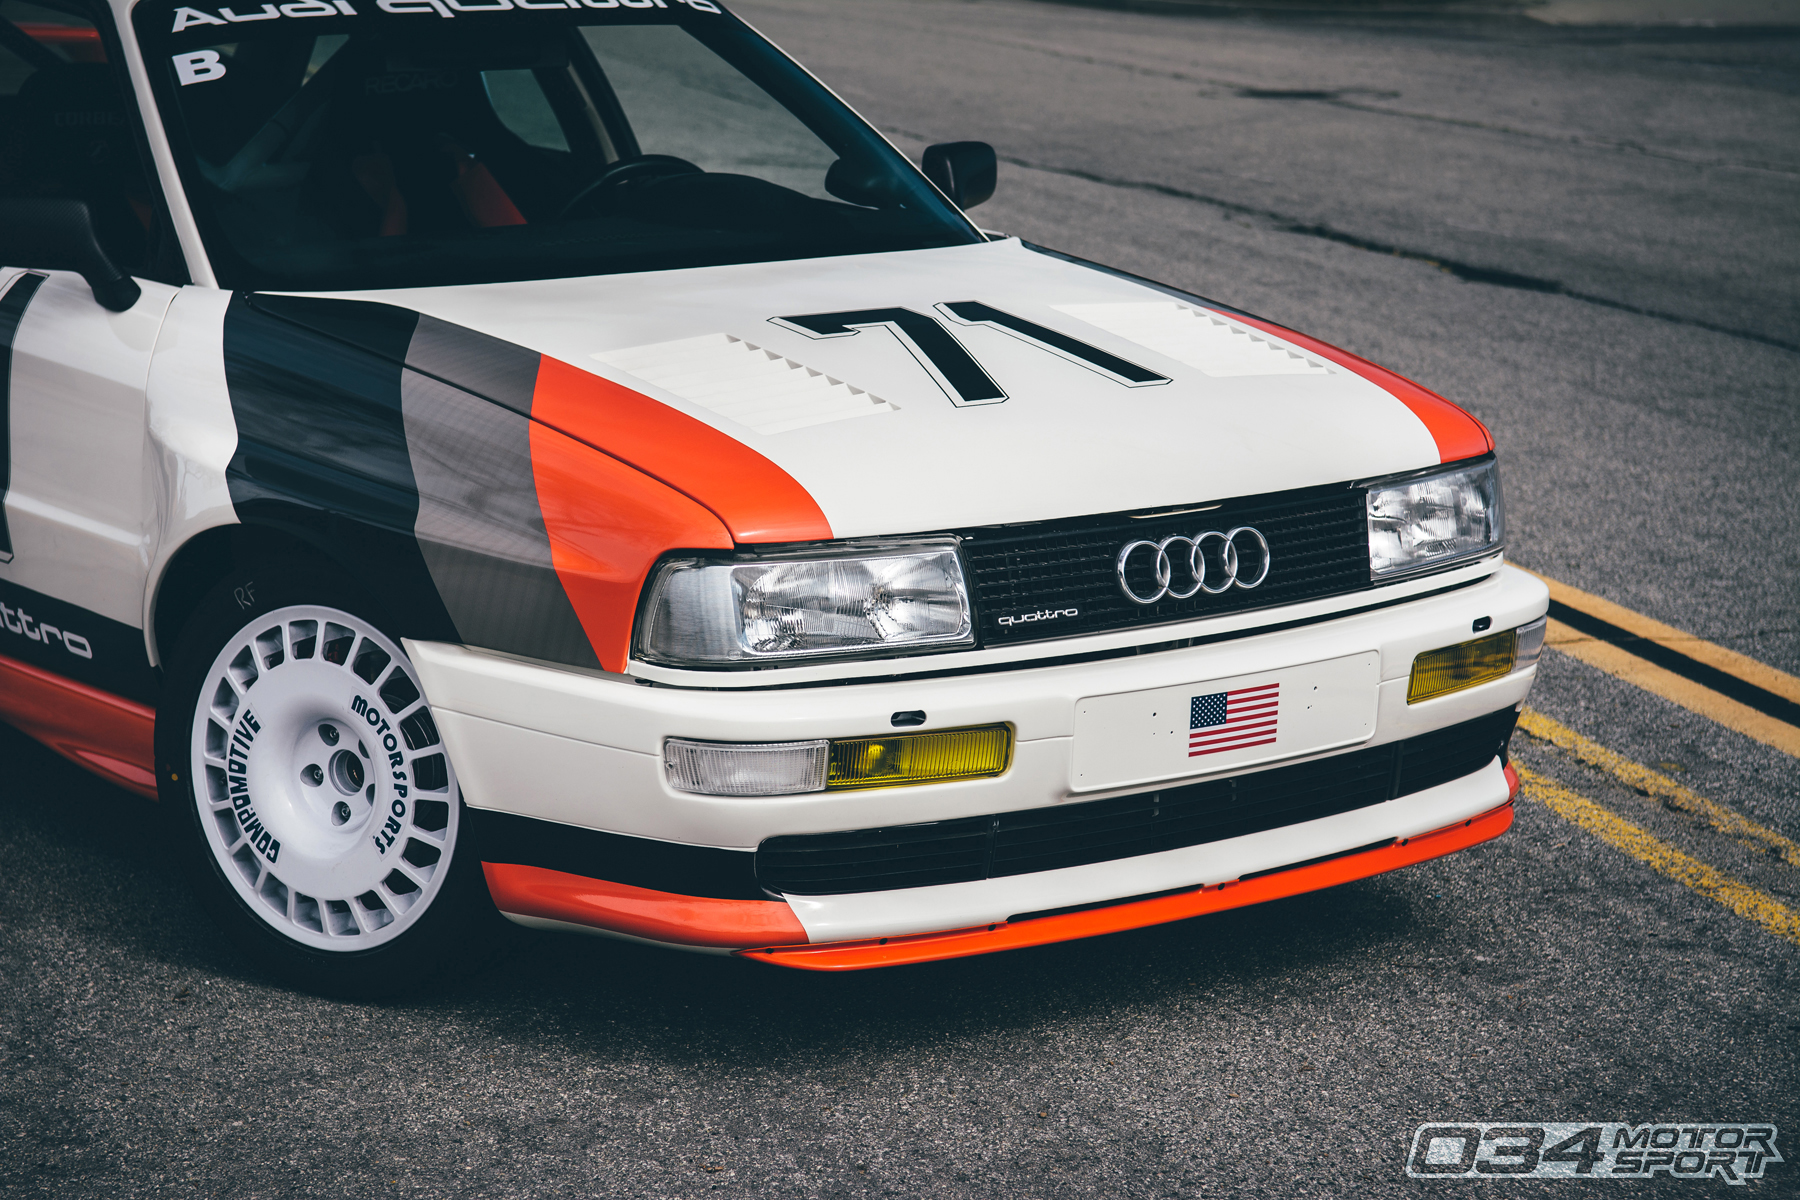 Turbocharged Audi 90 Quattro 20V with Compomotive Wheels